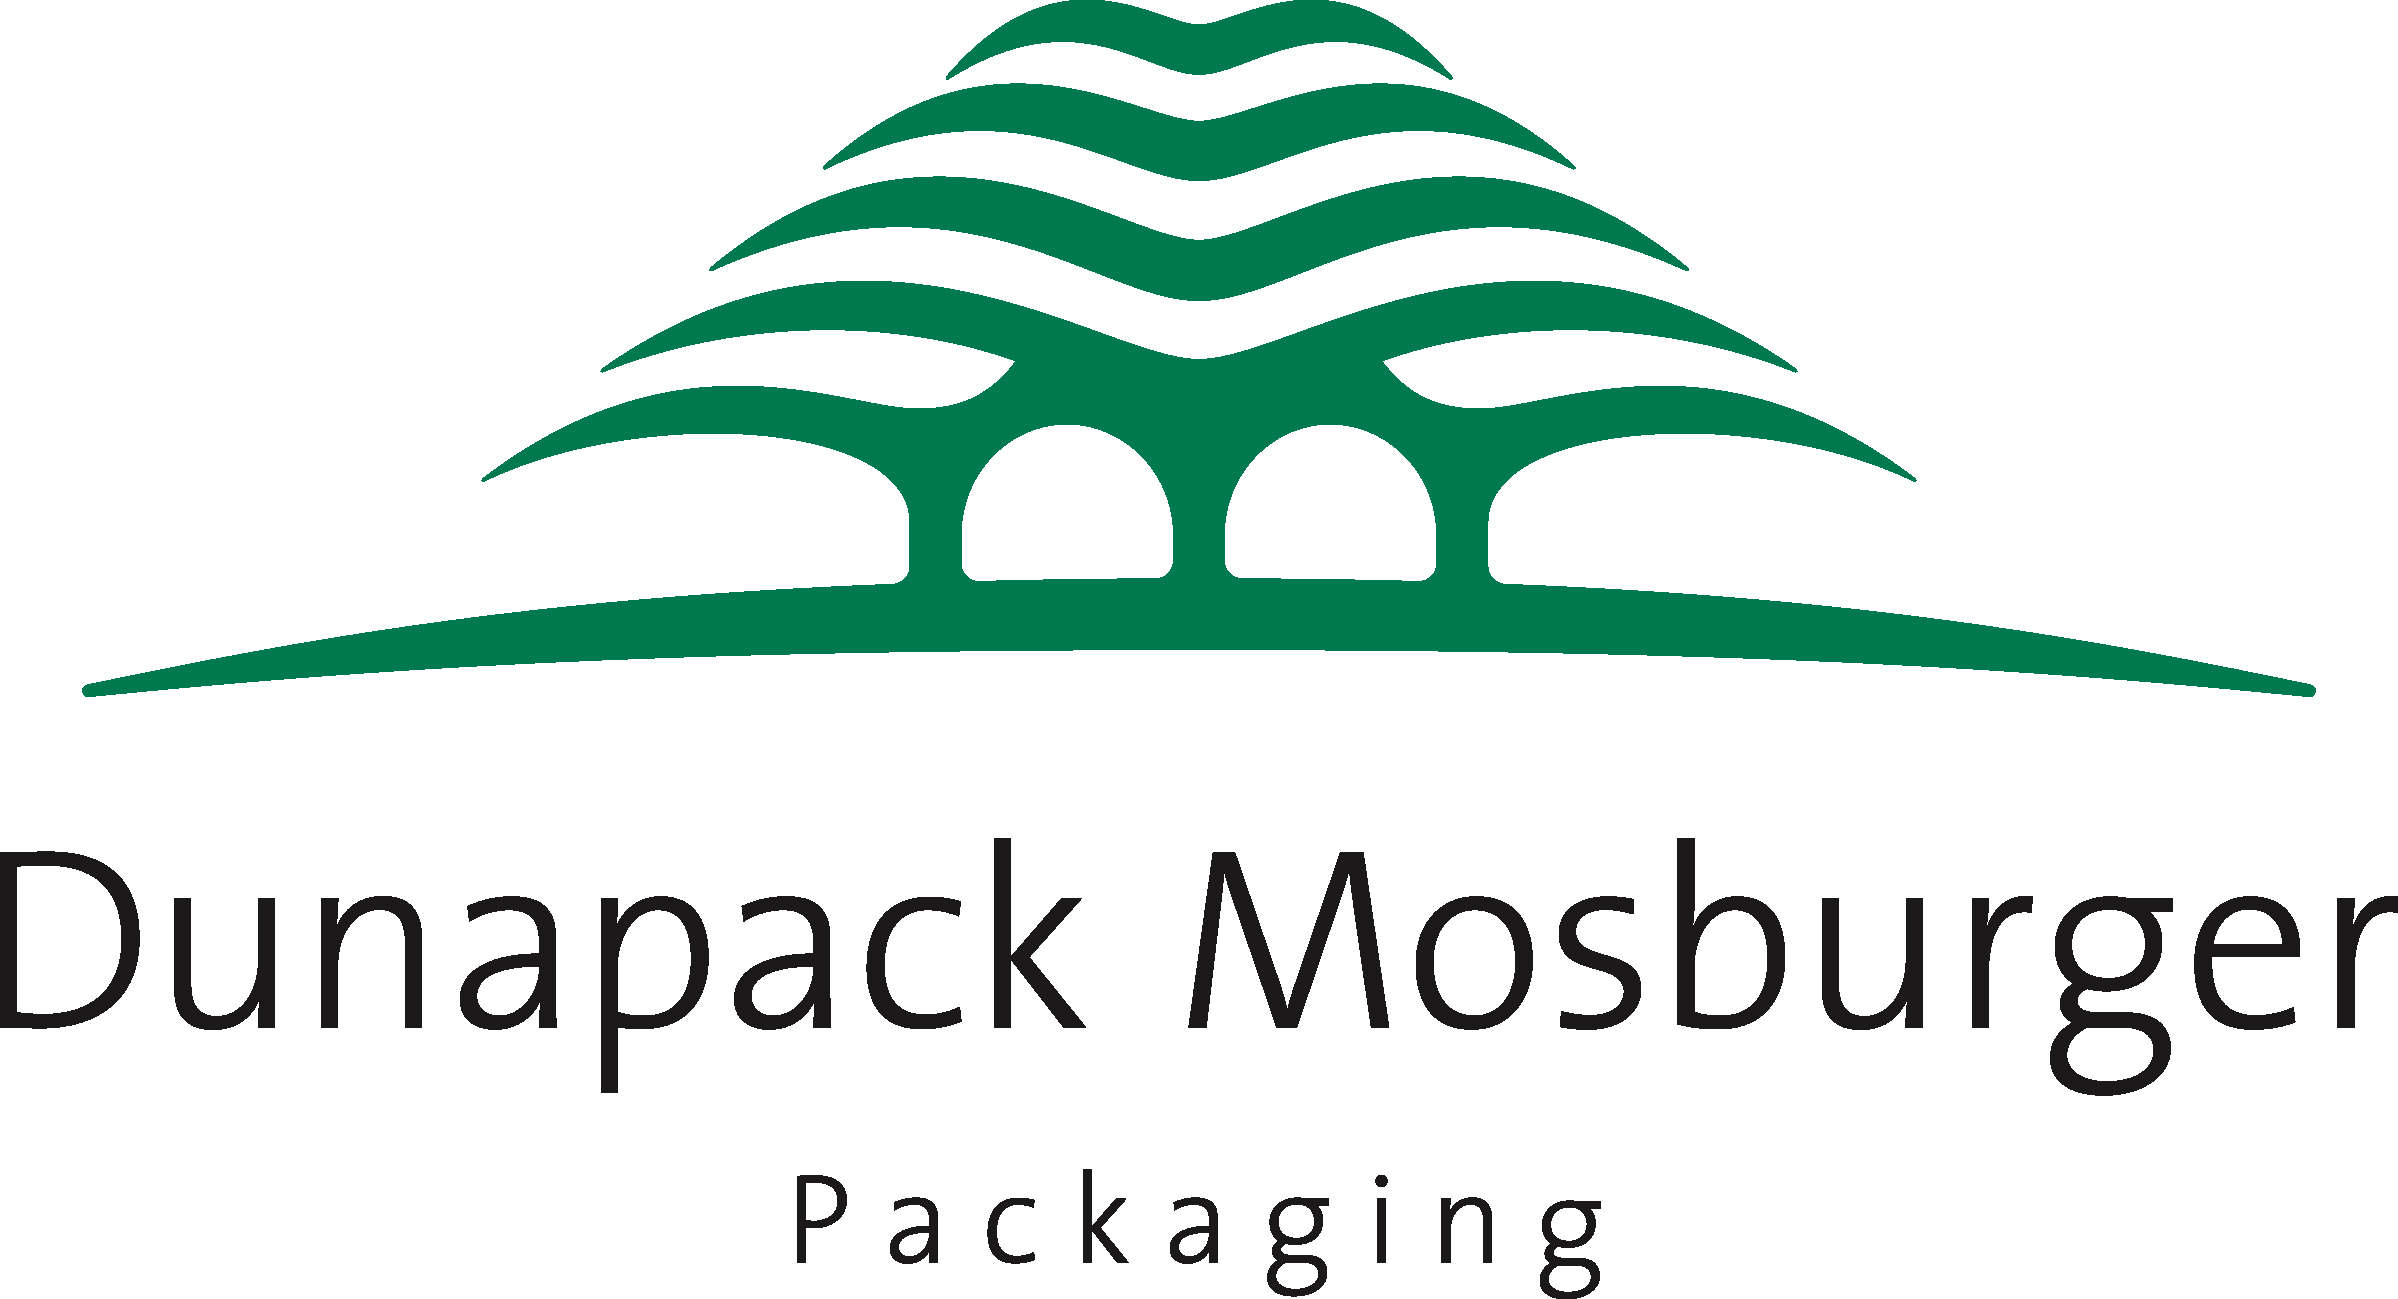 Dunapack Mosburger Logo Colour